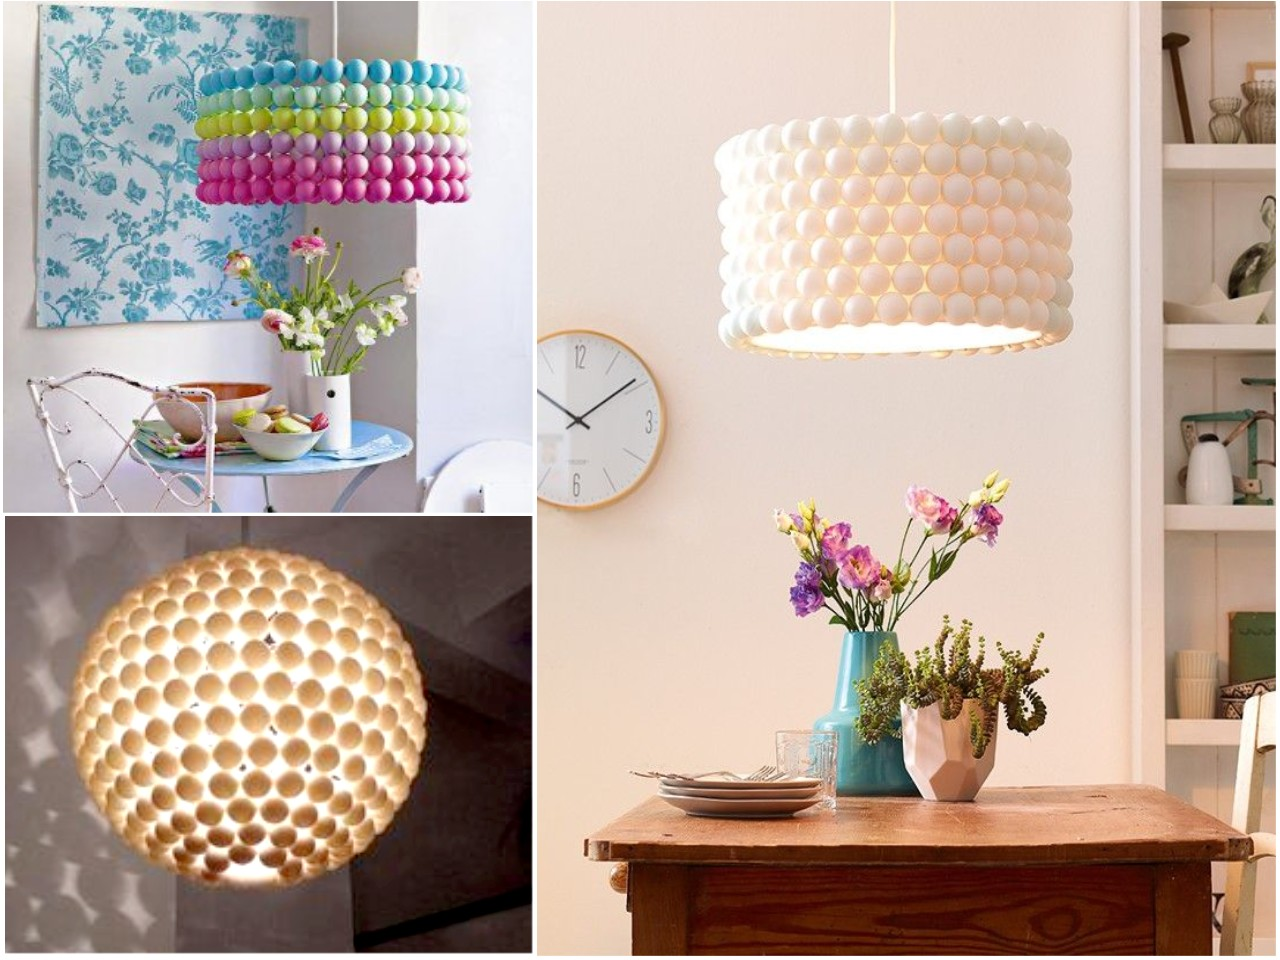 10 ideas originales de reciclar para decorar con l mparas for Adornos para decorar